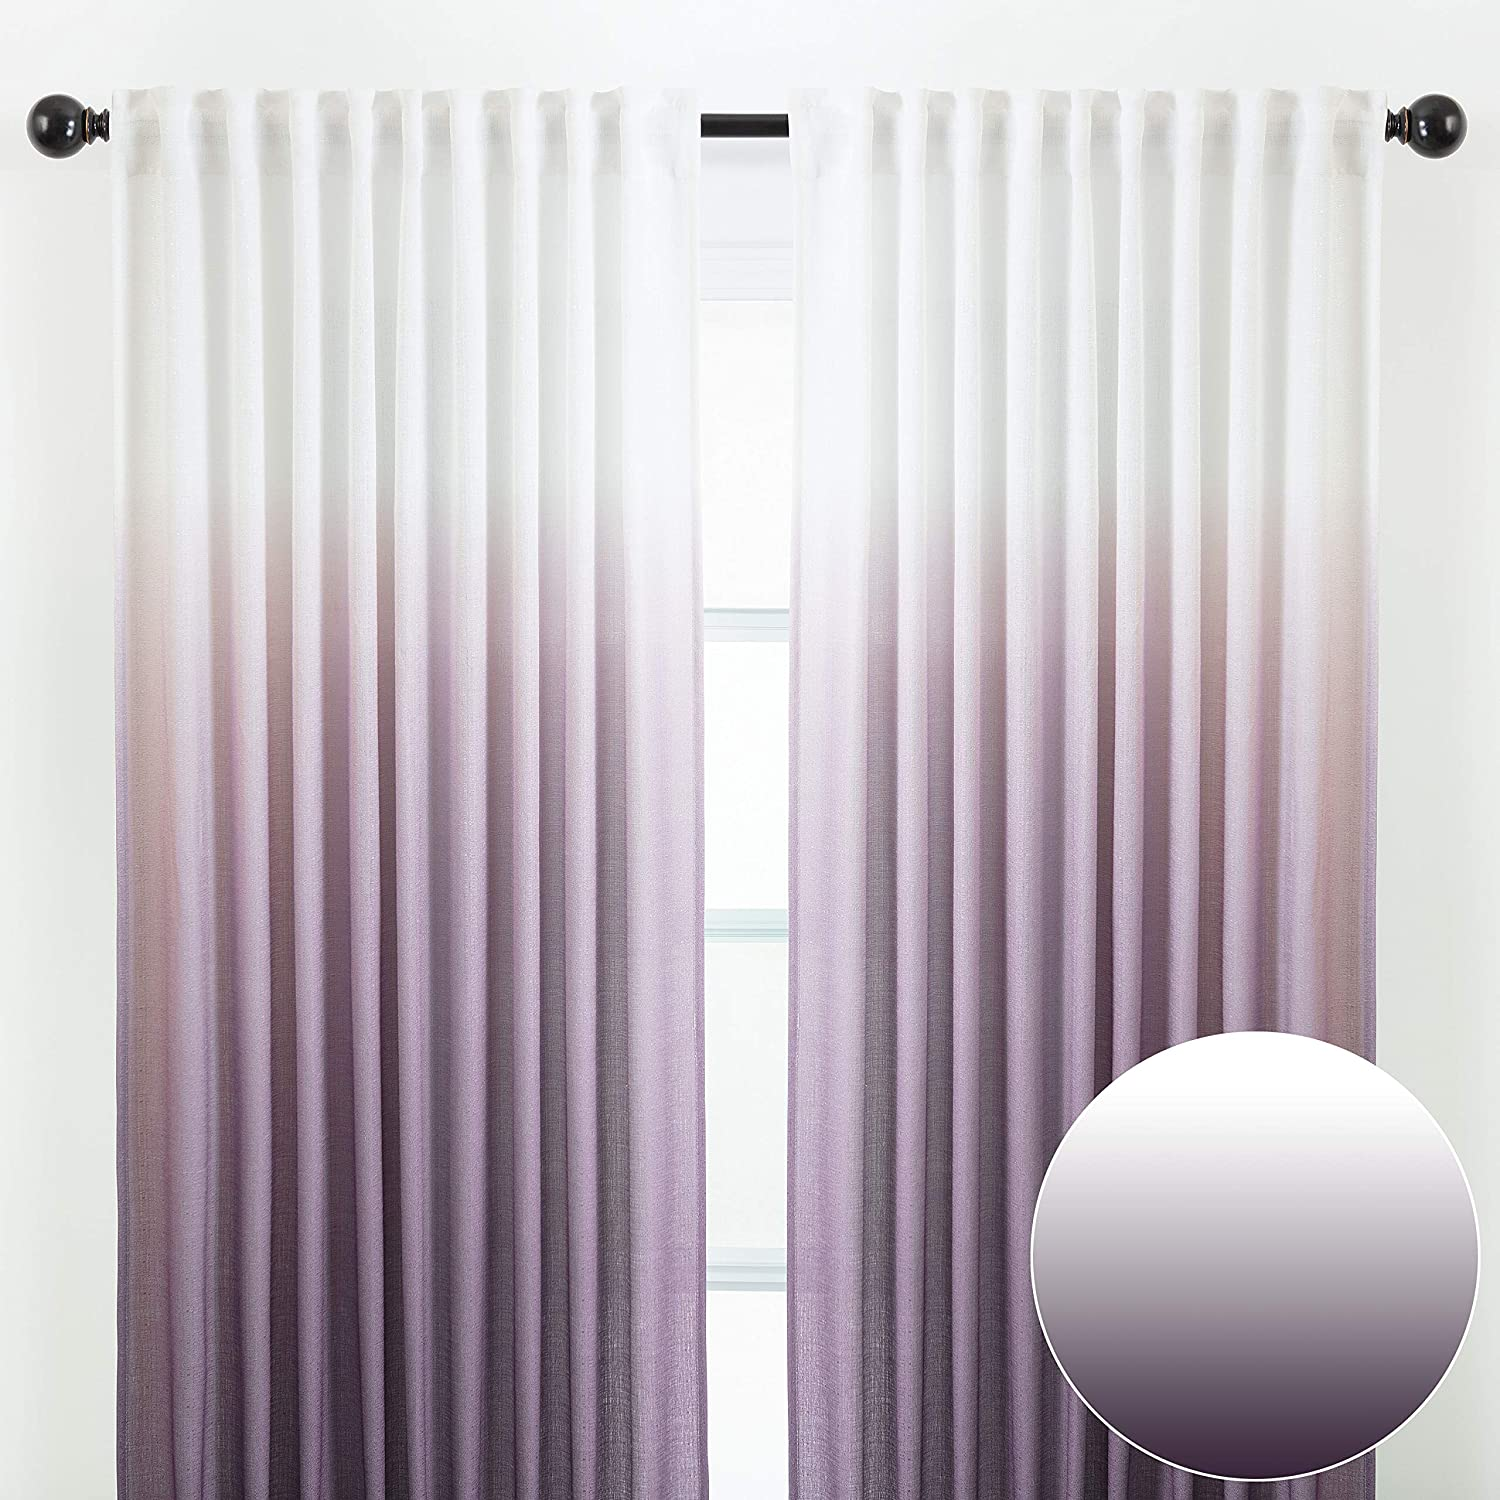 Chanasya 2-Panel Gradient Ombre Faux Belgian Flax Semi Sheer Curtains - for Windows Living Room Bedroom Patio - Partial See Through Elegant Drapes for Privacy & Home Decor 52 x 84 Inches Long - Purple